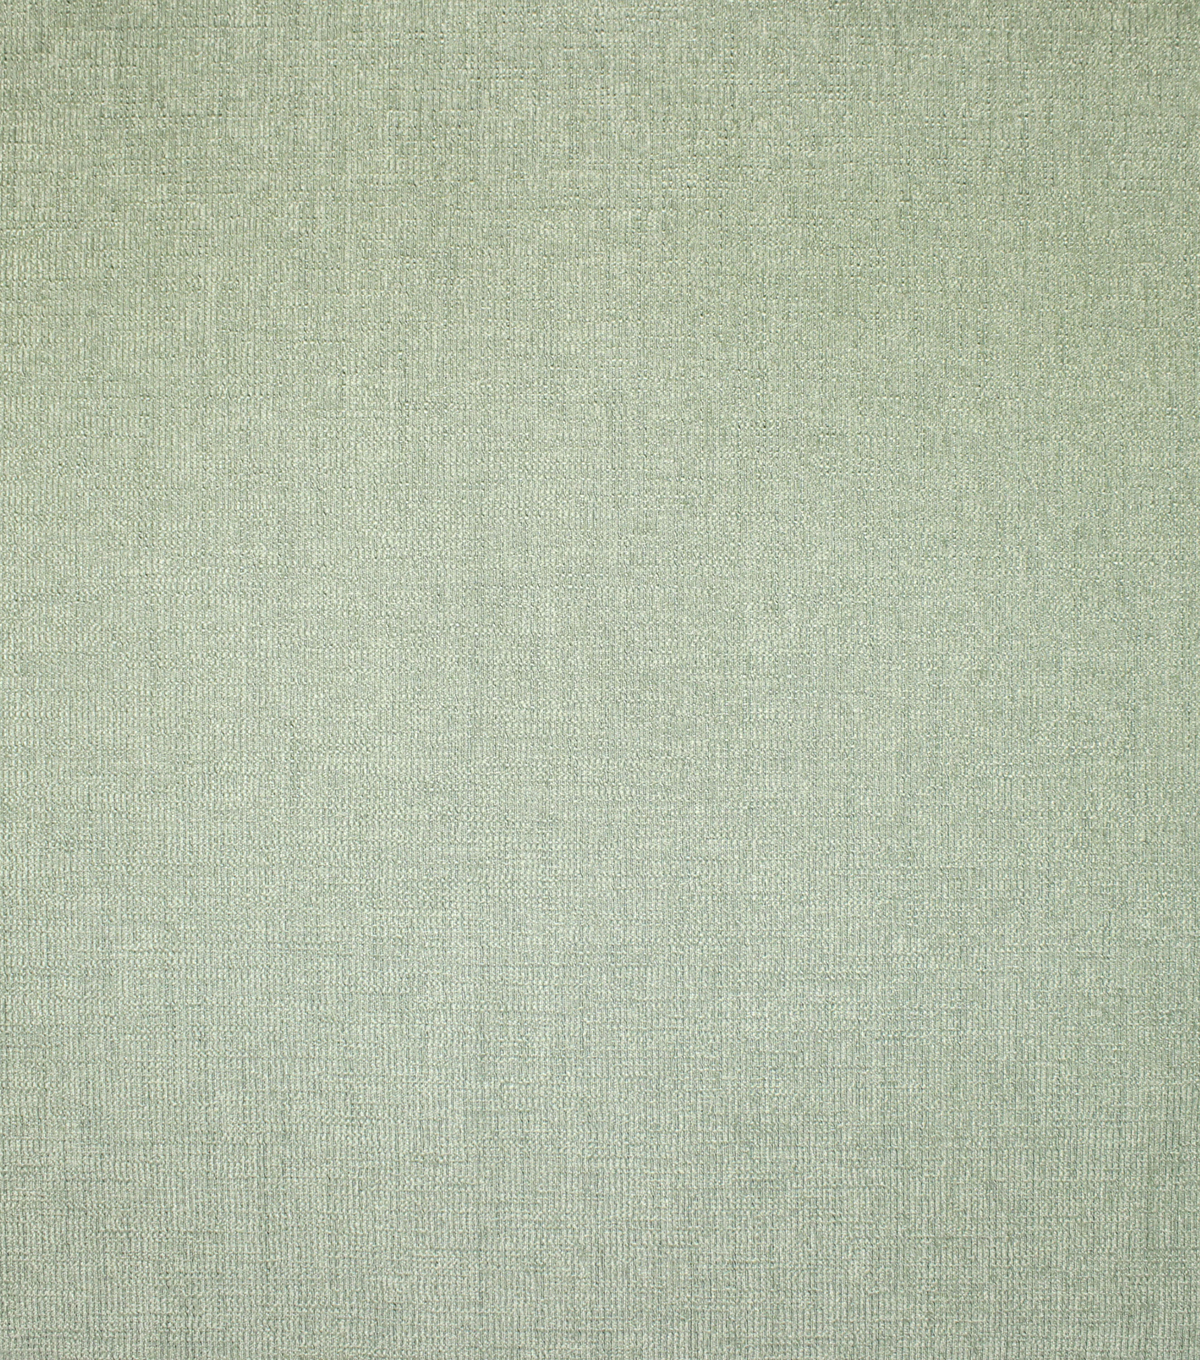 Home Decor 8\u0022x8\u0022 Fabric Swatch-Upholstery Fabric Barrow M7929-5638 Sea